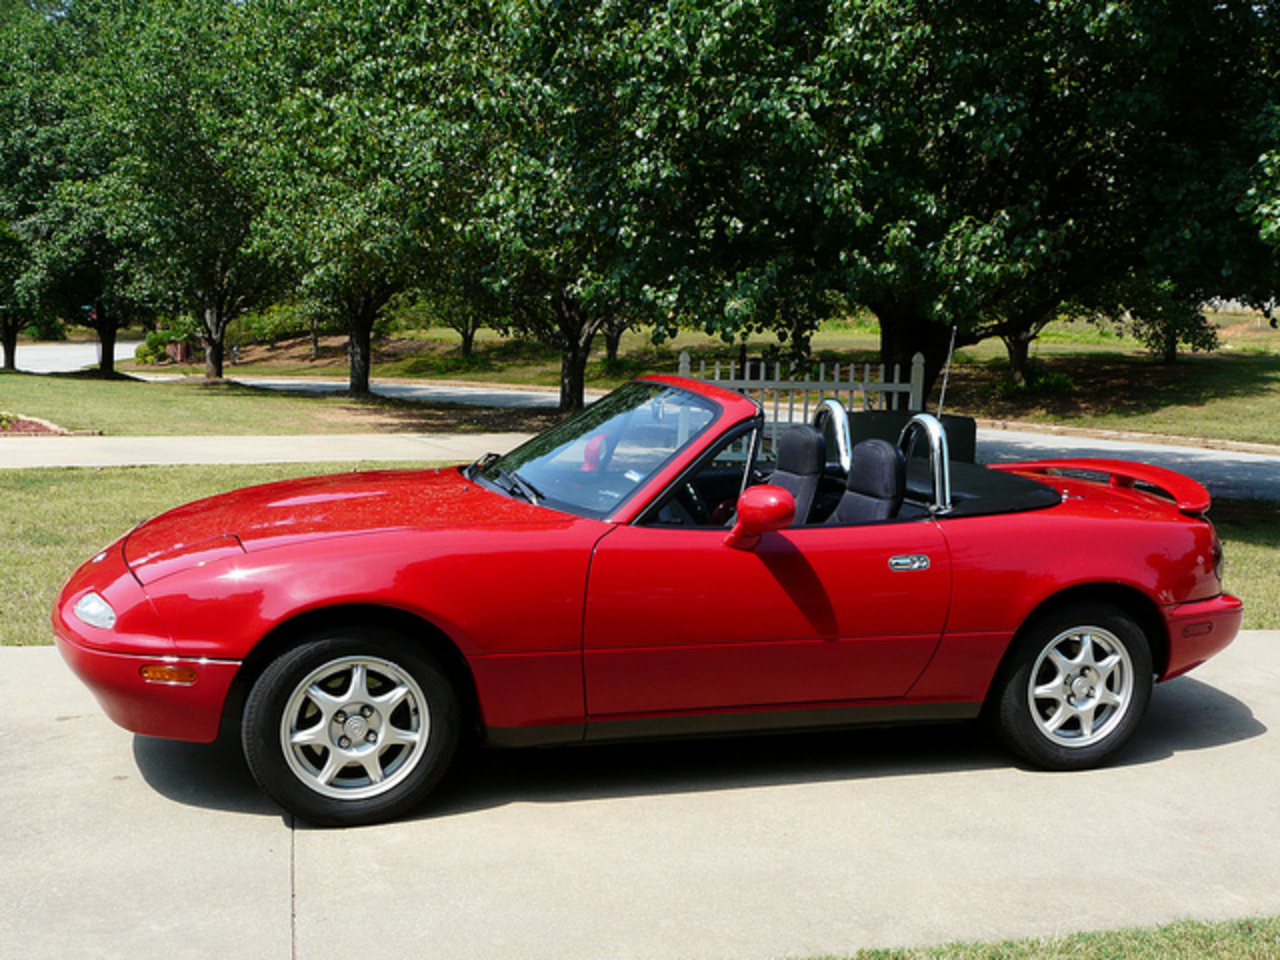 1994 Mazda Miata MX-5 Convertible | Flickr - Photo Sharing!